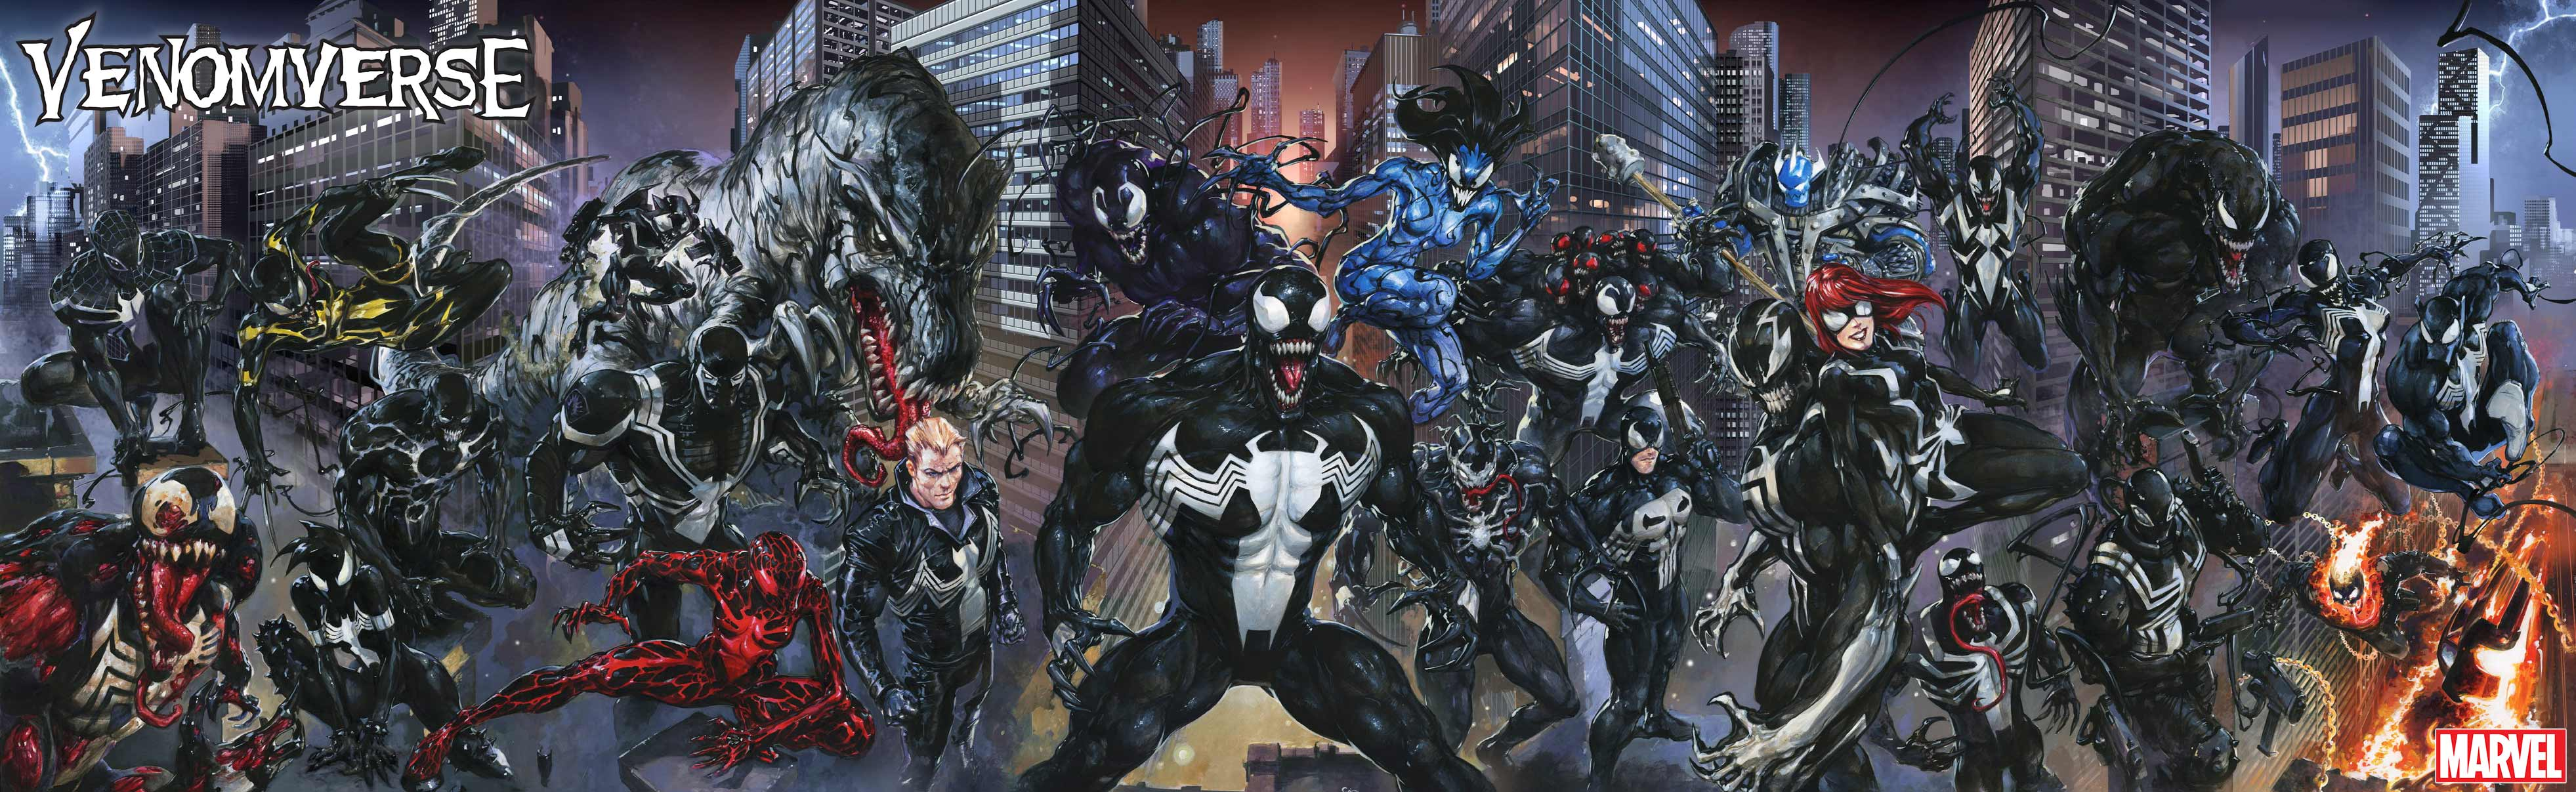 Marvel Paints It Black With Venomverse